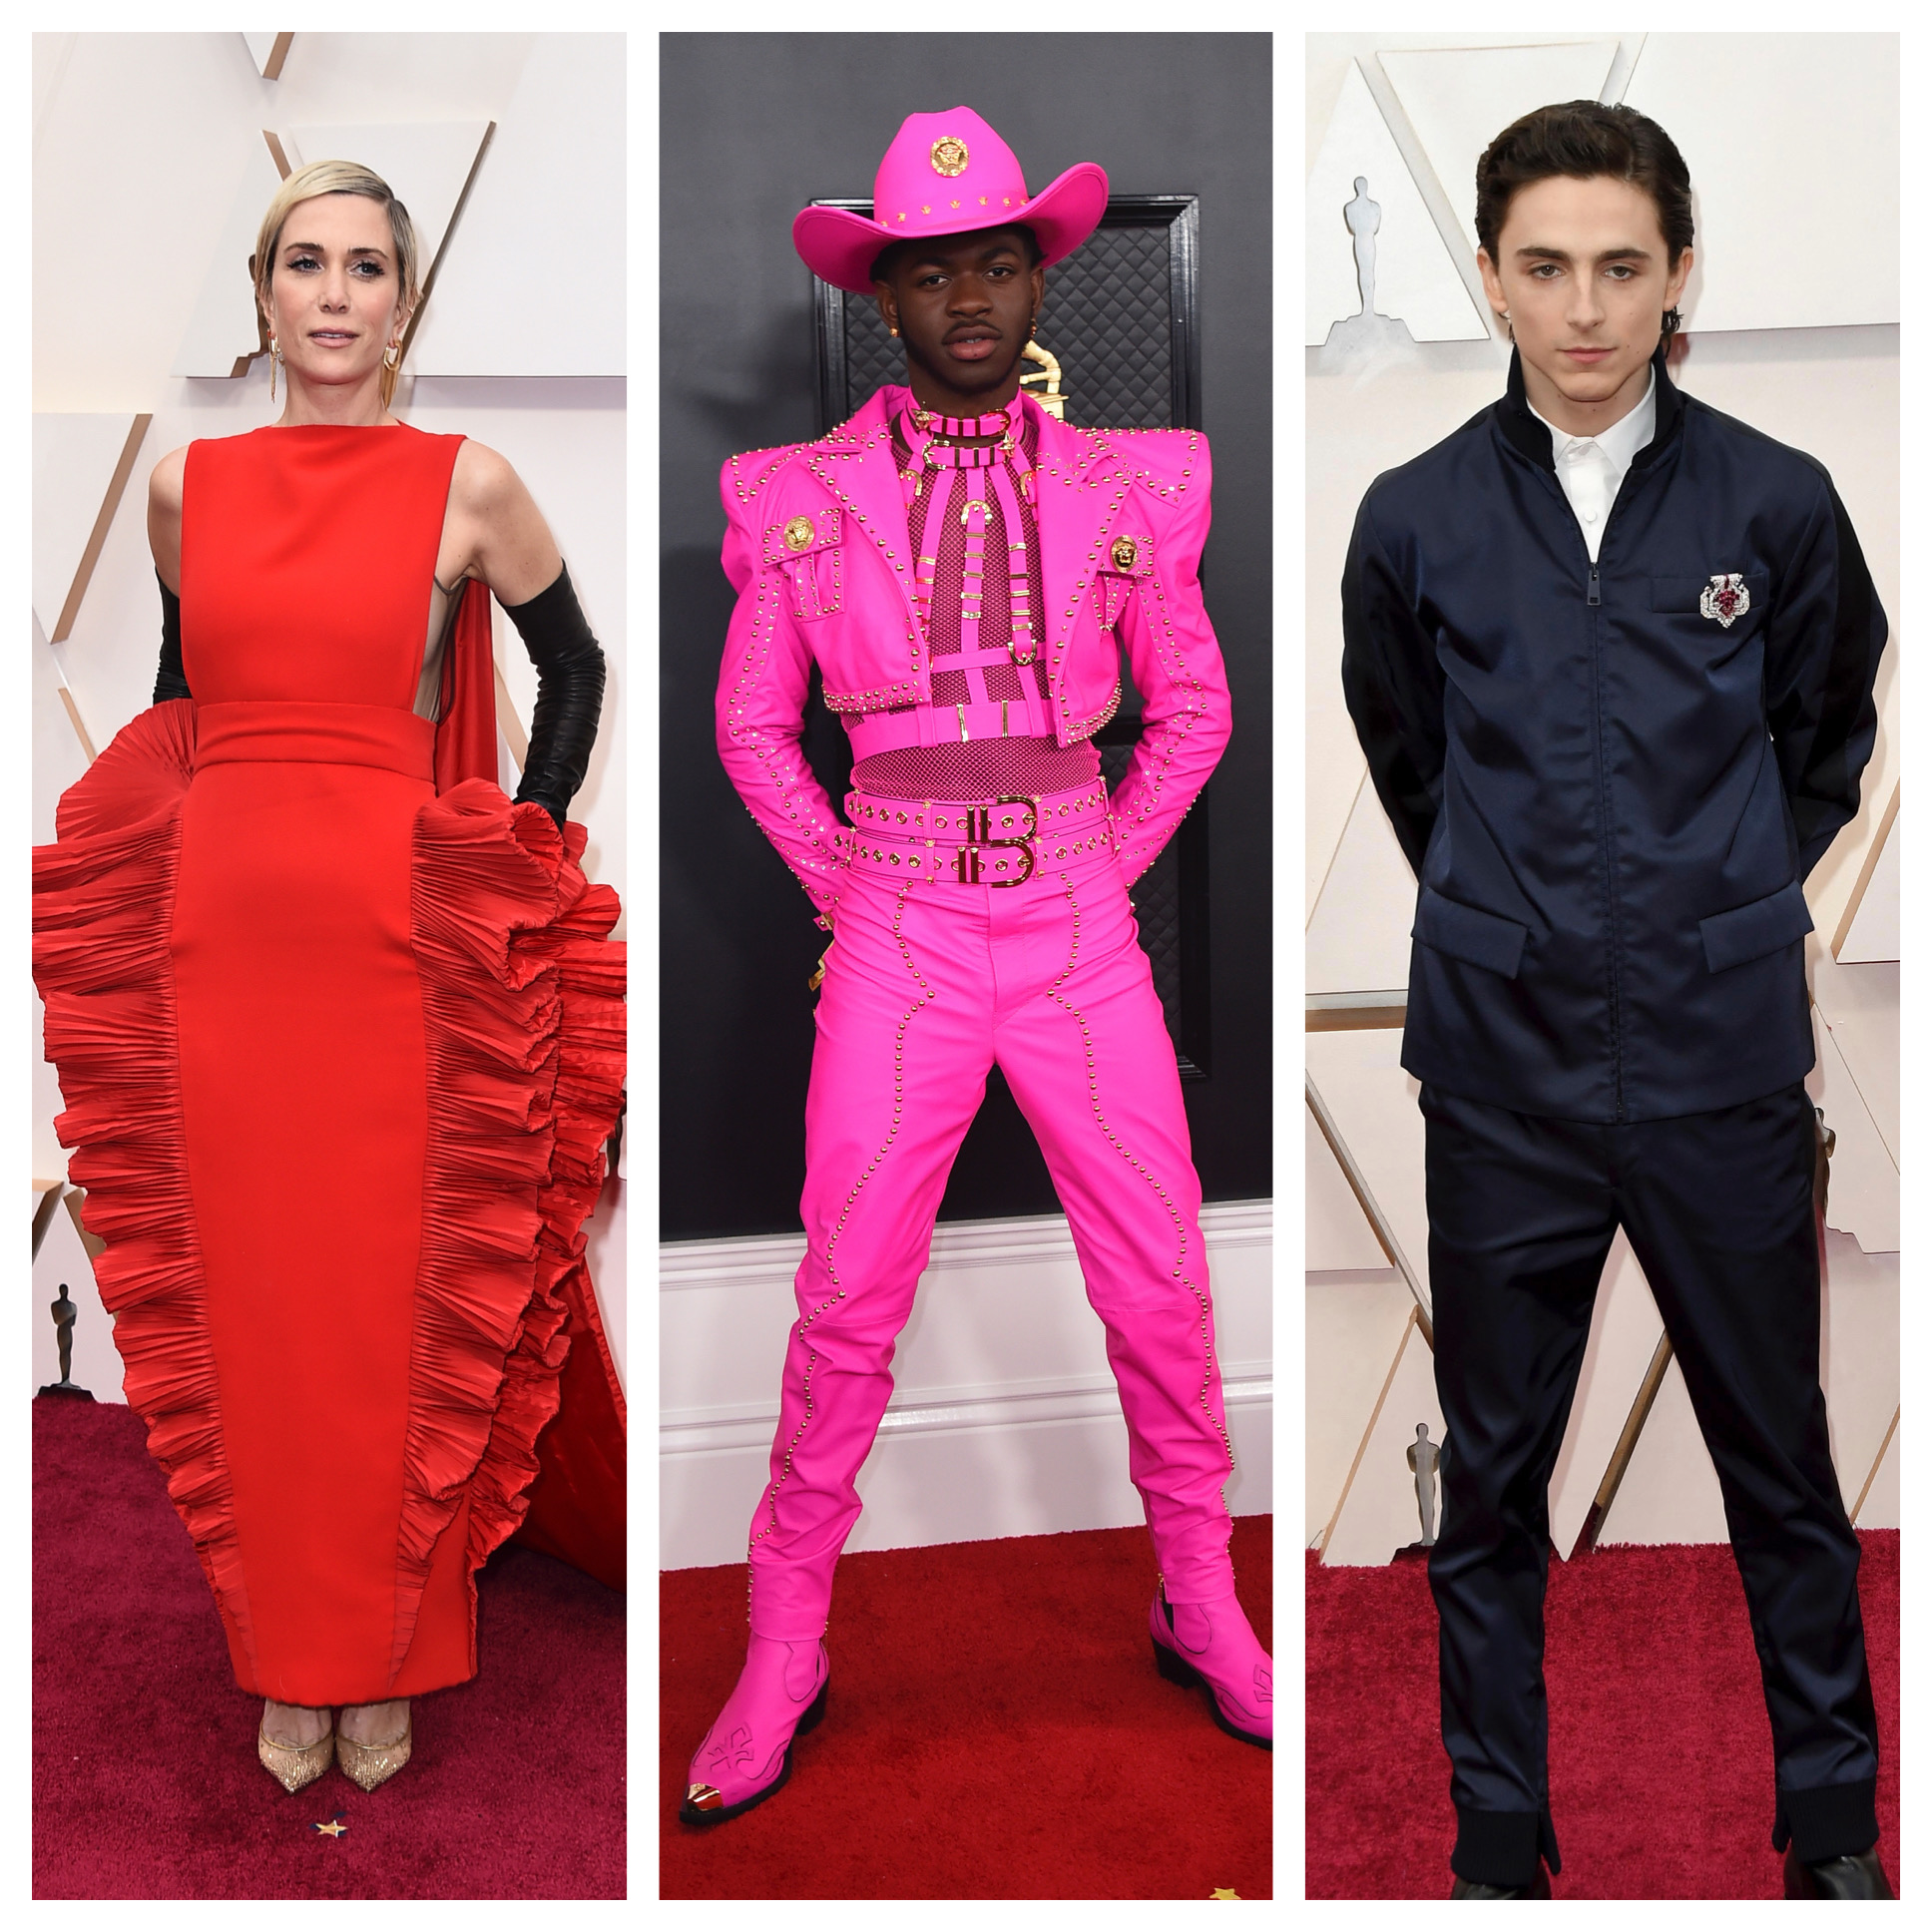 Pantone Fall 2021 Colors: How Celebrities Are Wearing the Colors on the Red Carpet